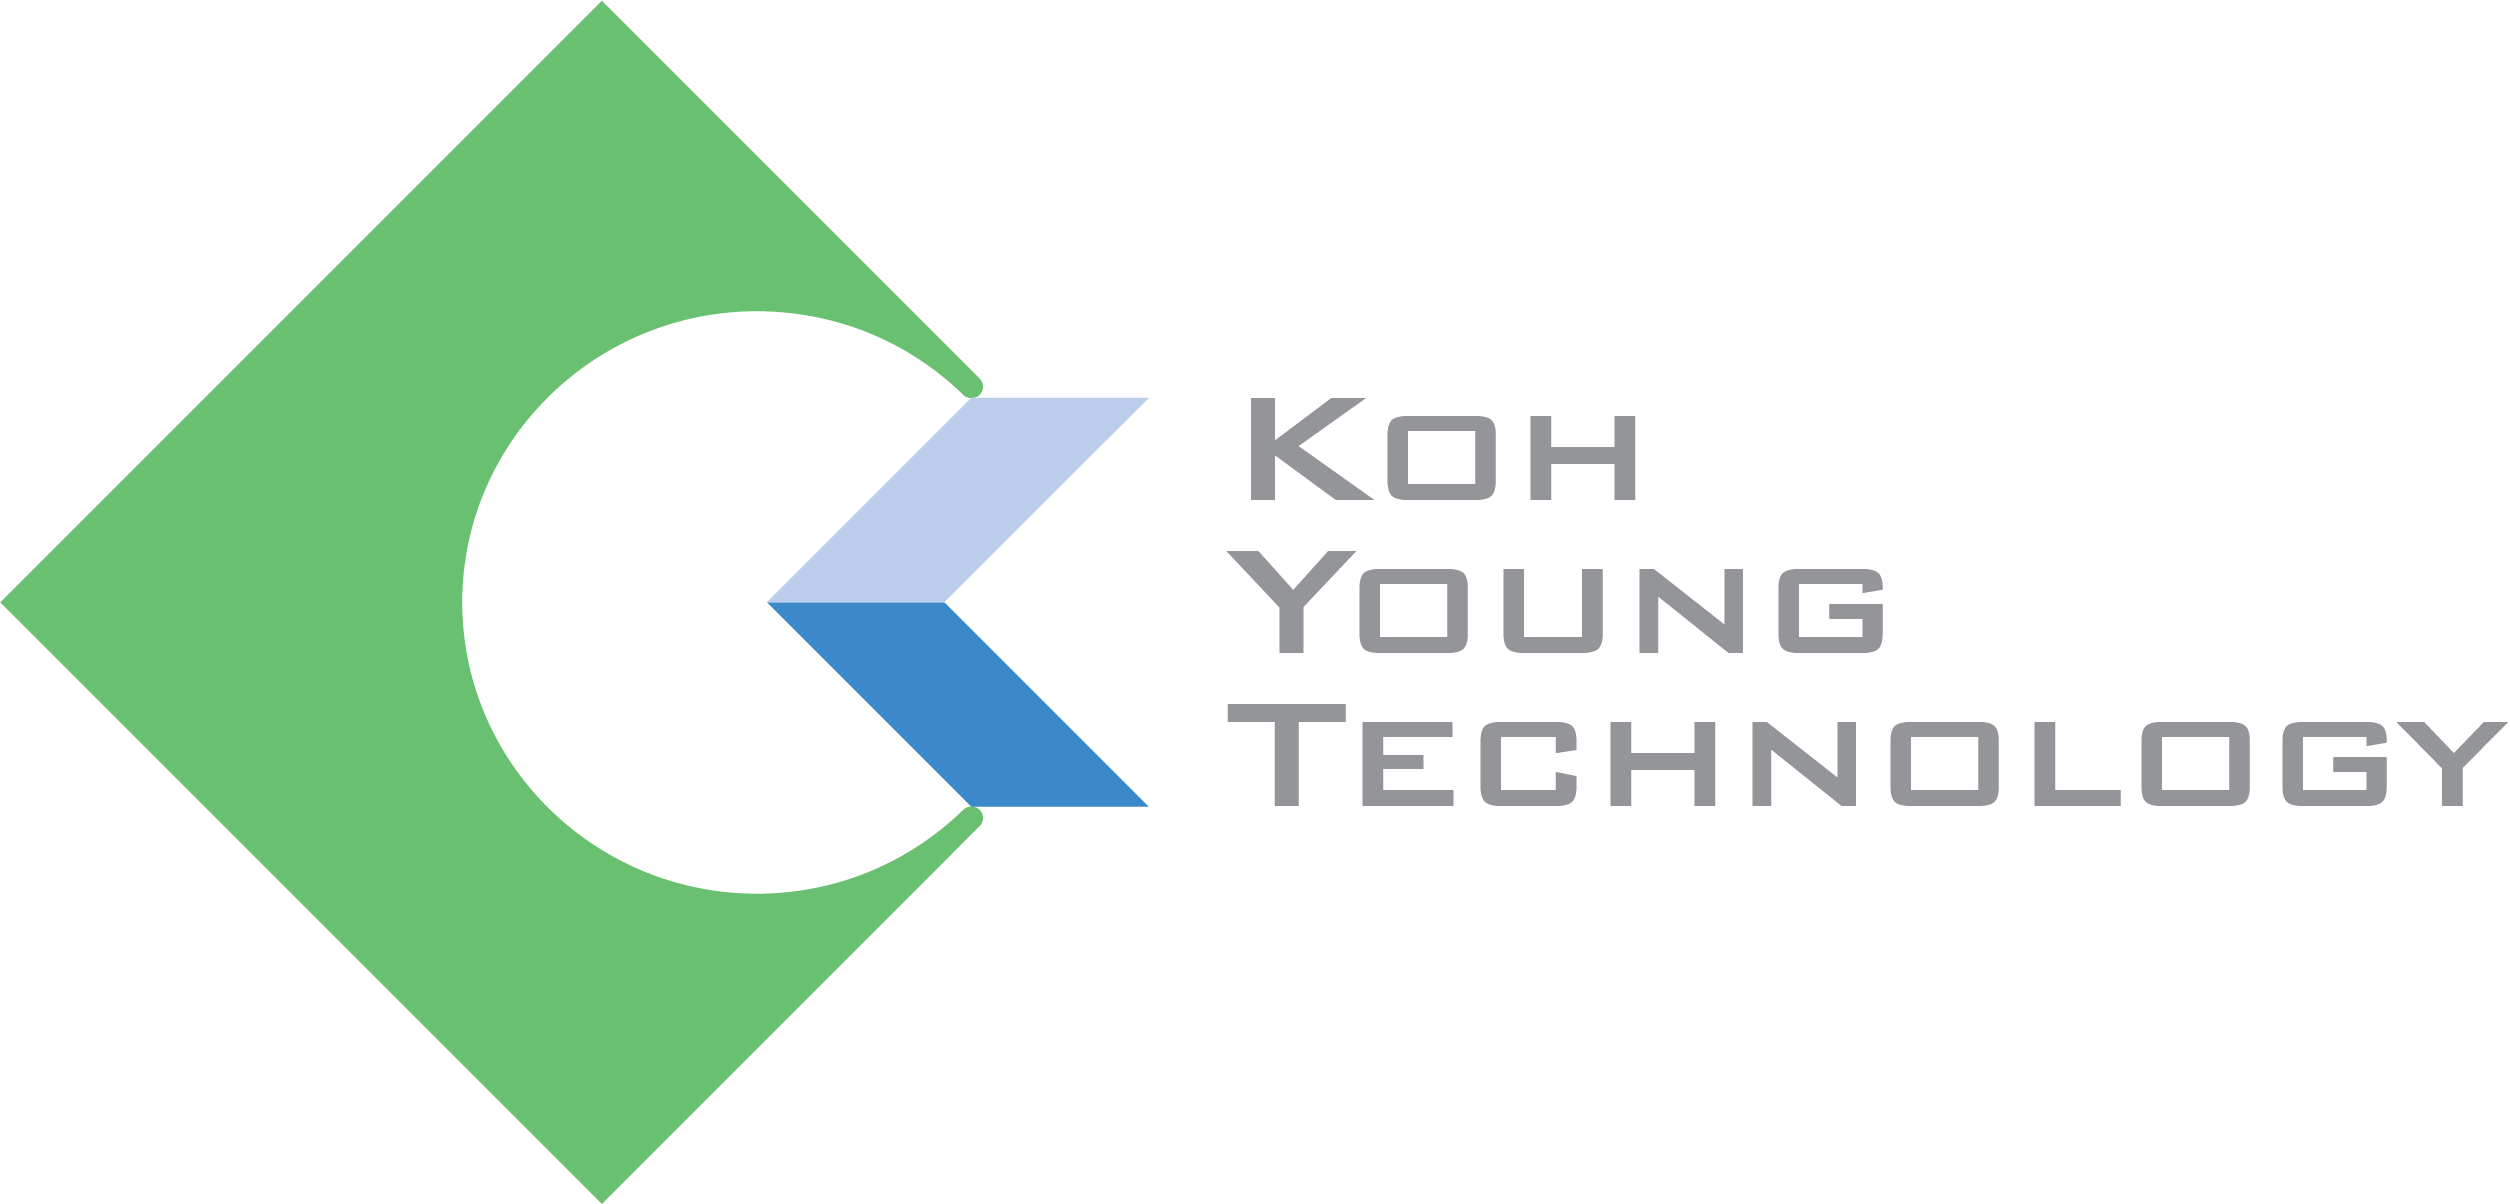 Koh Young Technology logo